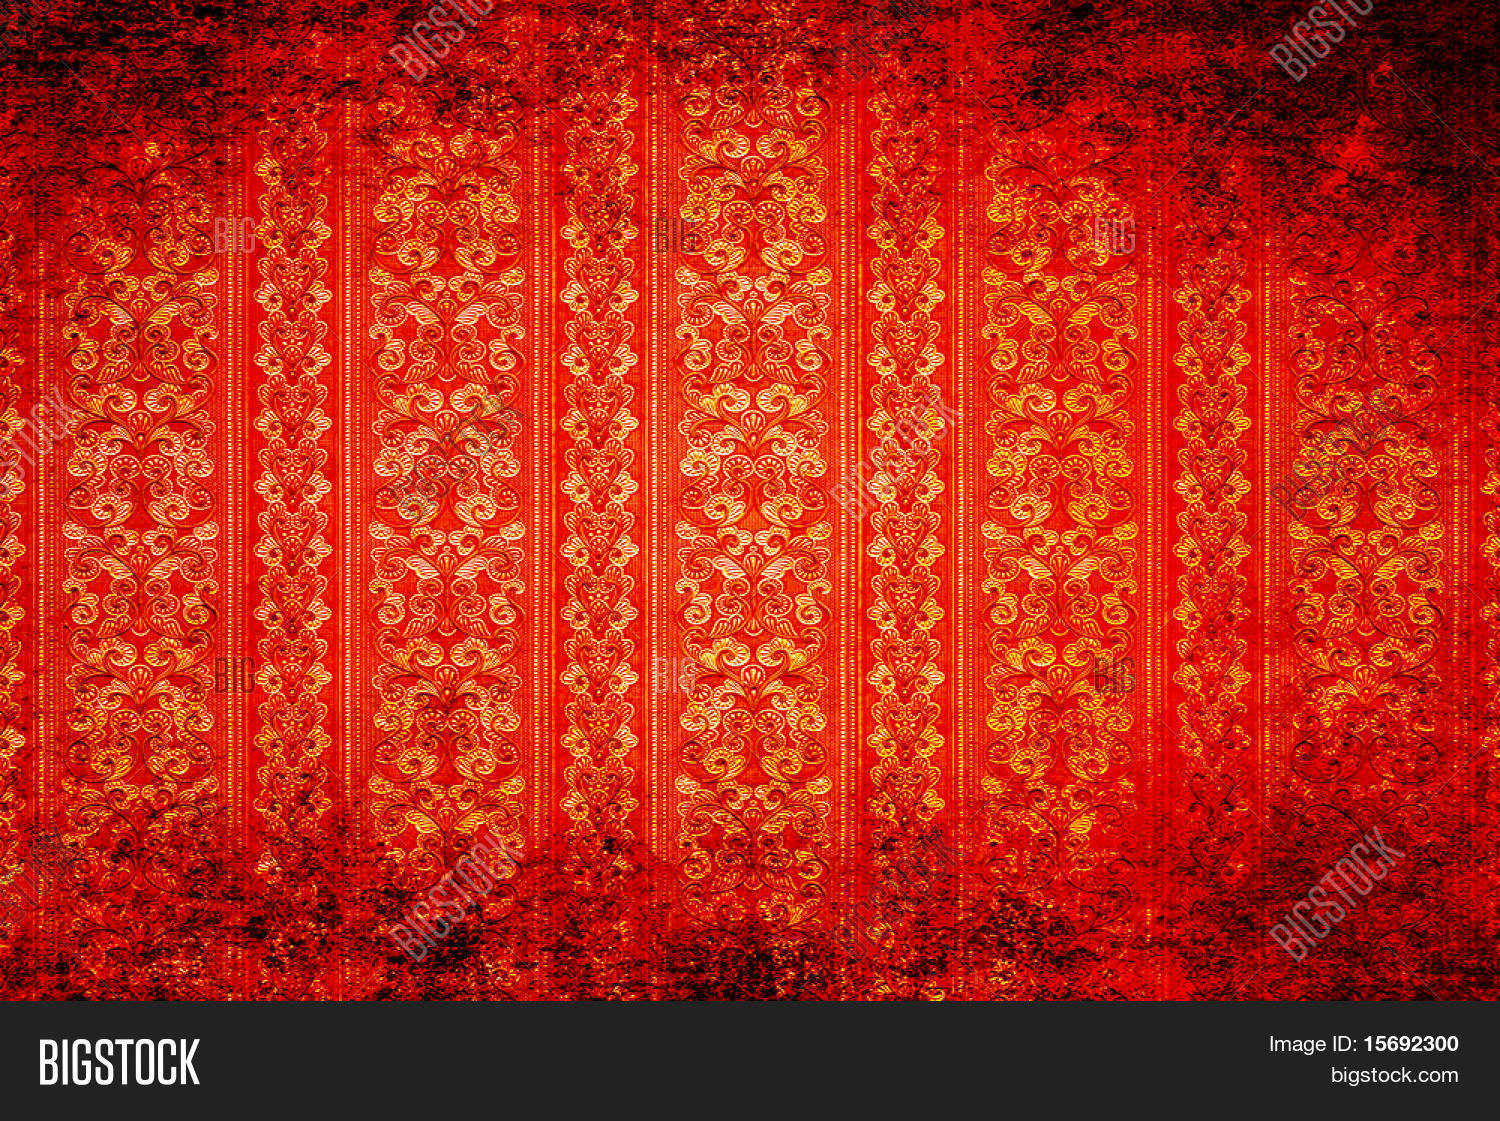 Simple Wallpaper Halloween Grunge - 15692300  Perfect Image Reference_44654.jpg